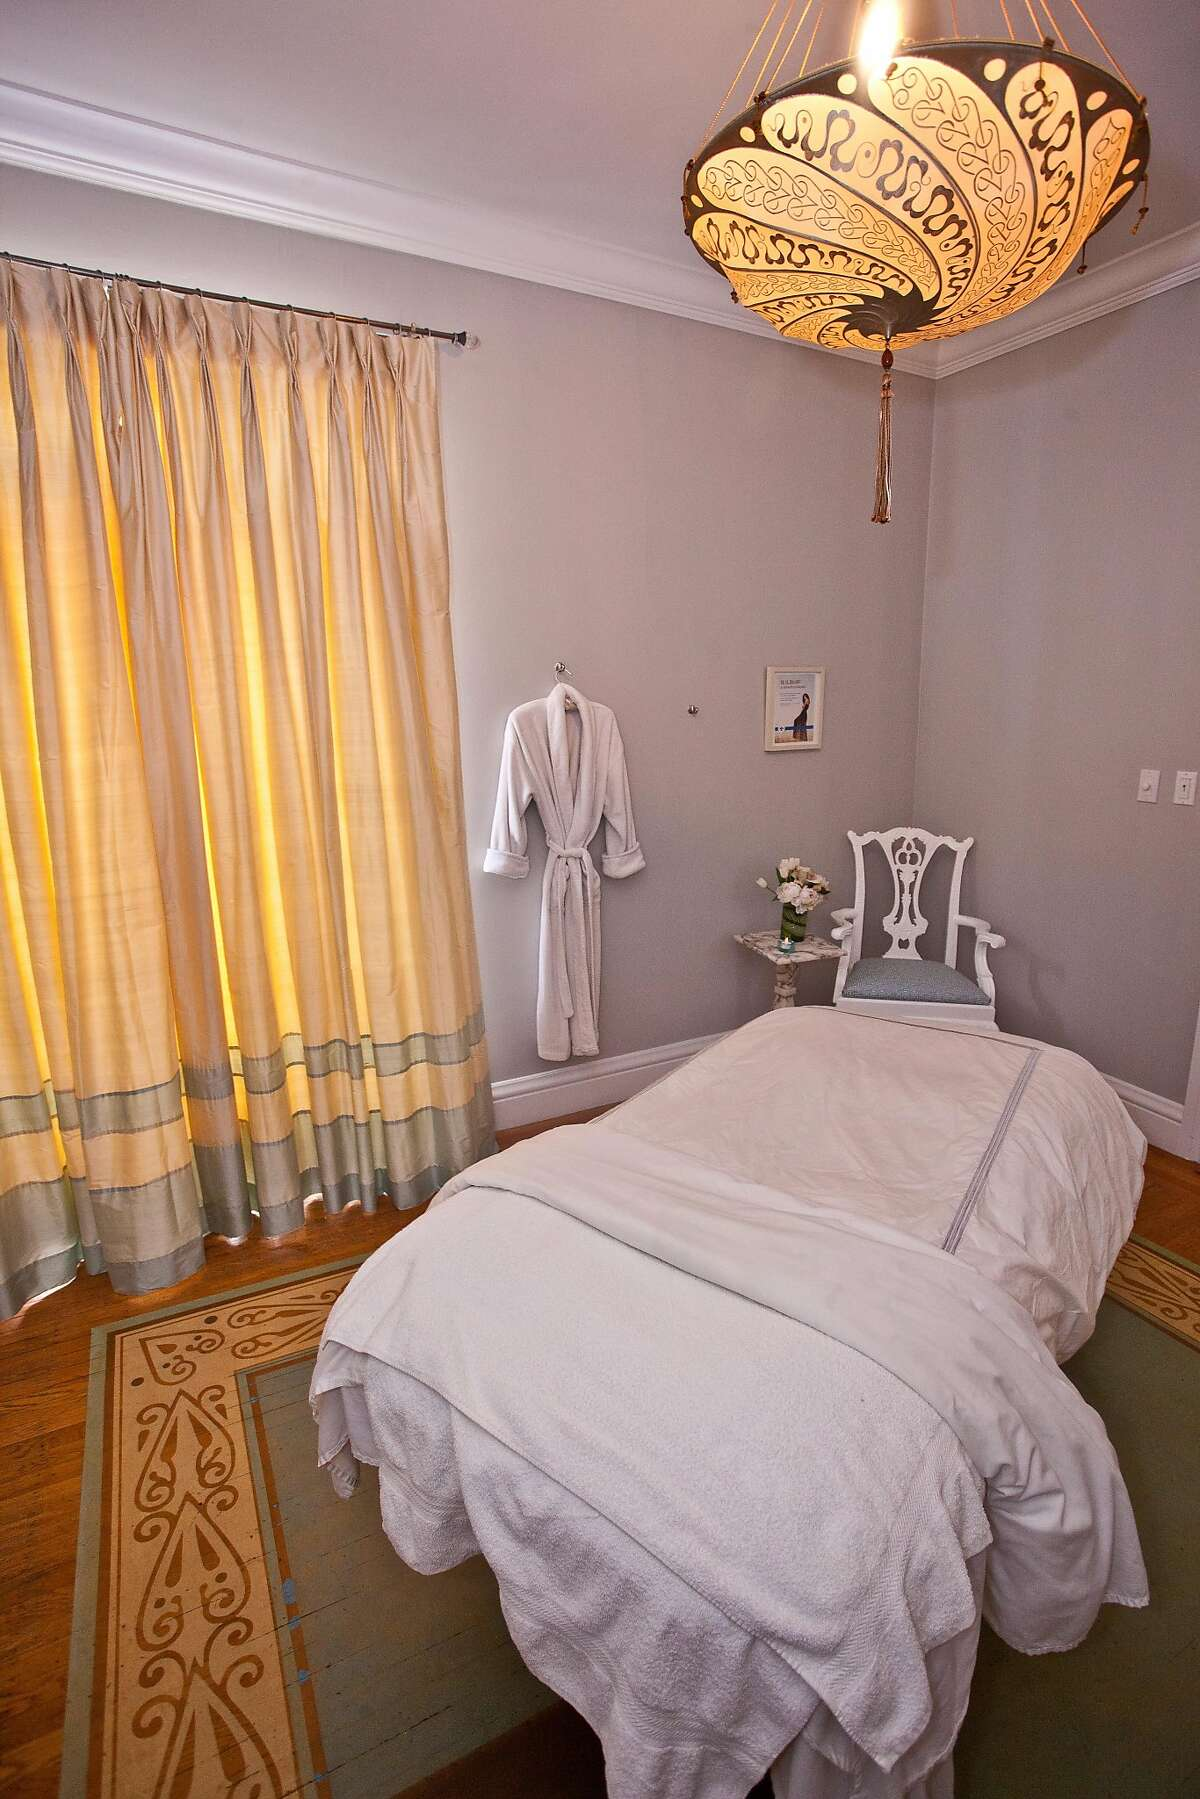 Jay Jeffers has redone the interiors of Spa Radiance in Cow Hollow. Pictured is a treatment room.